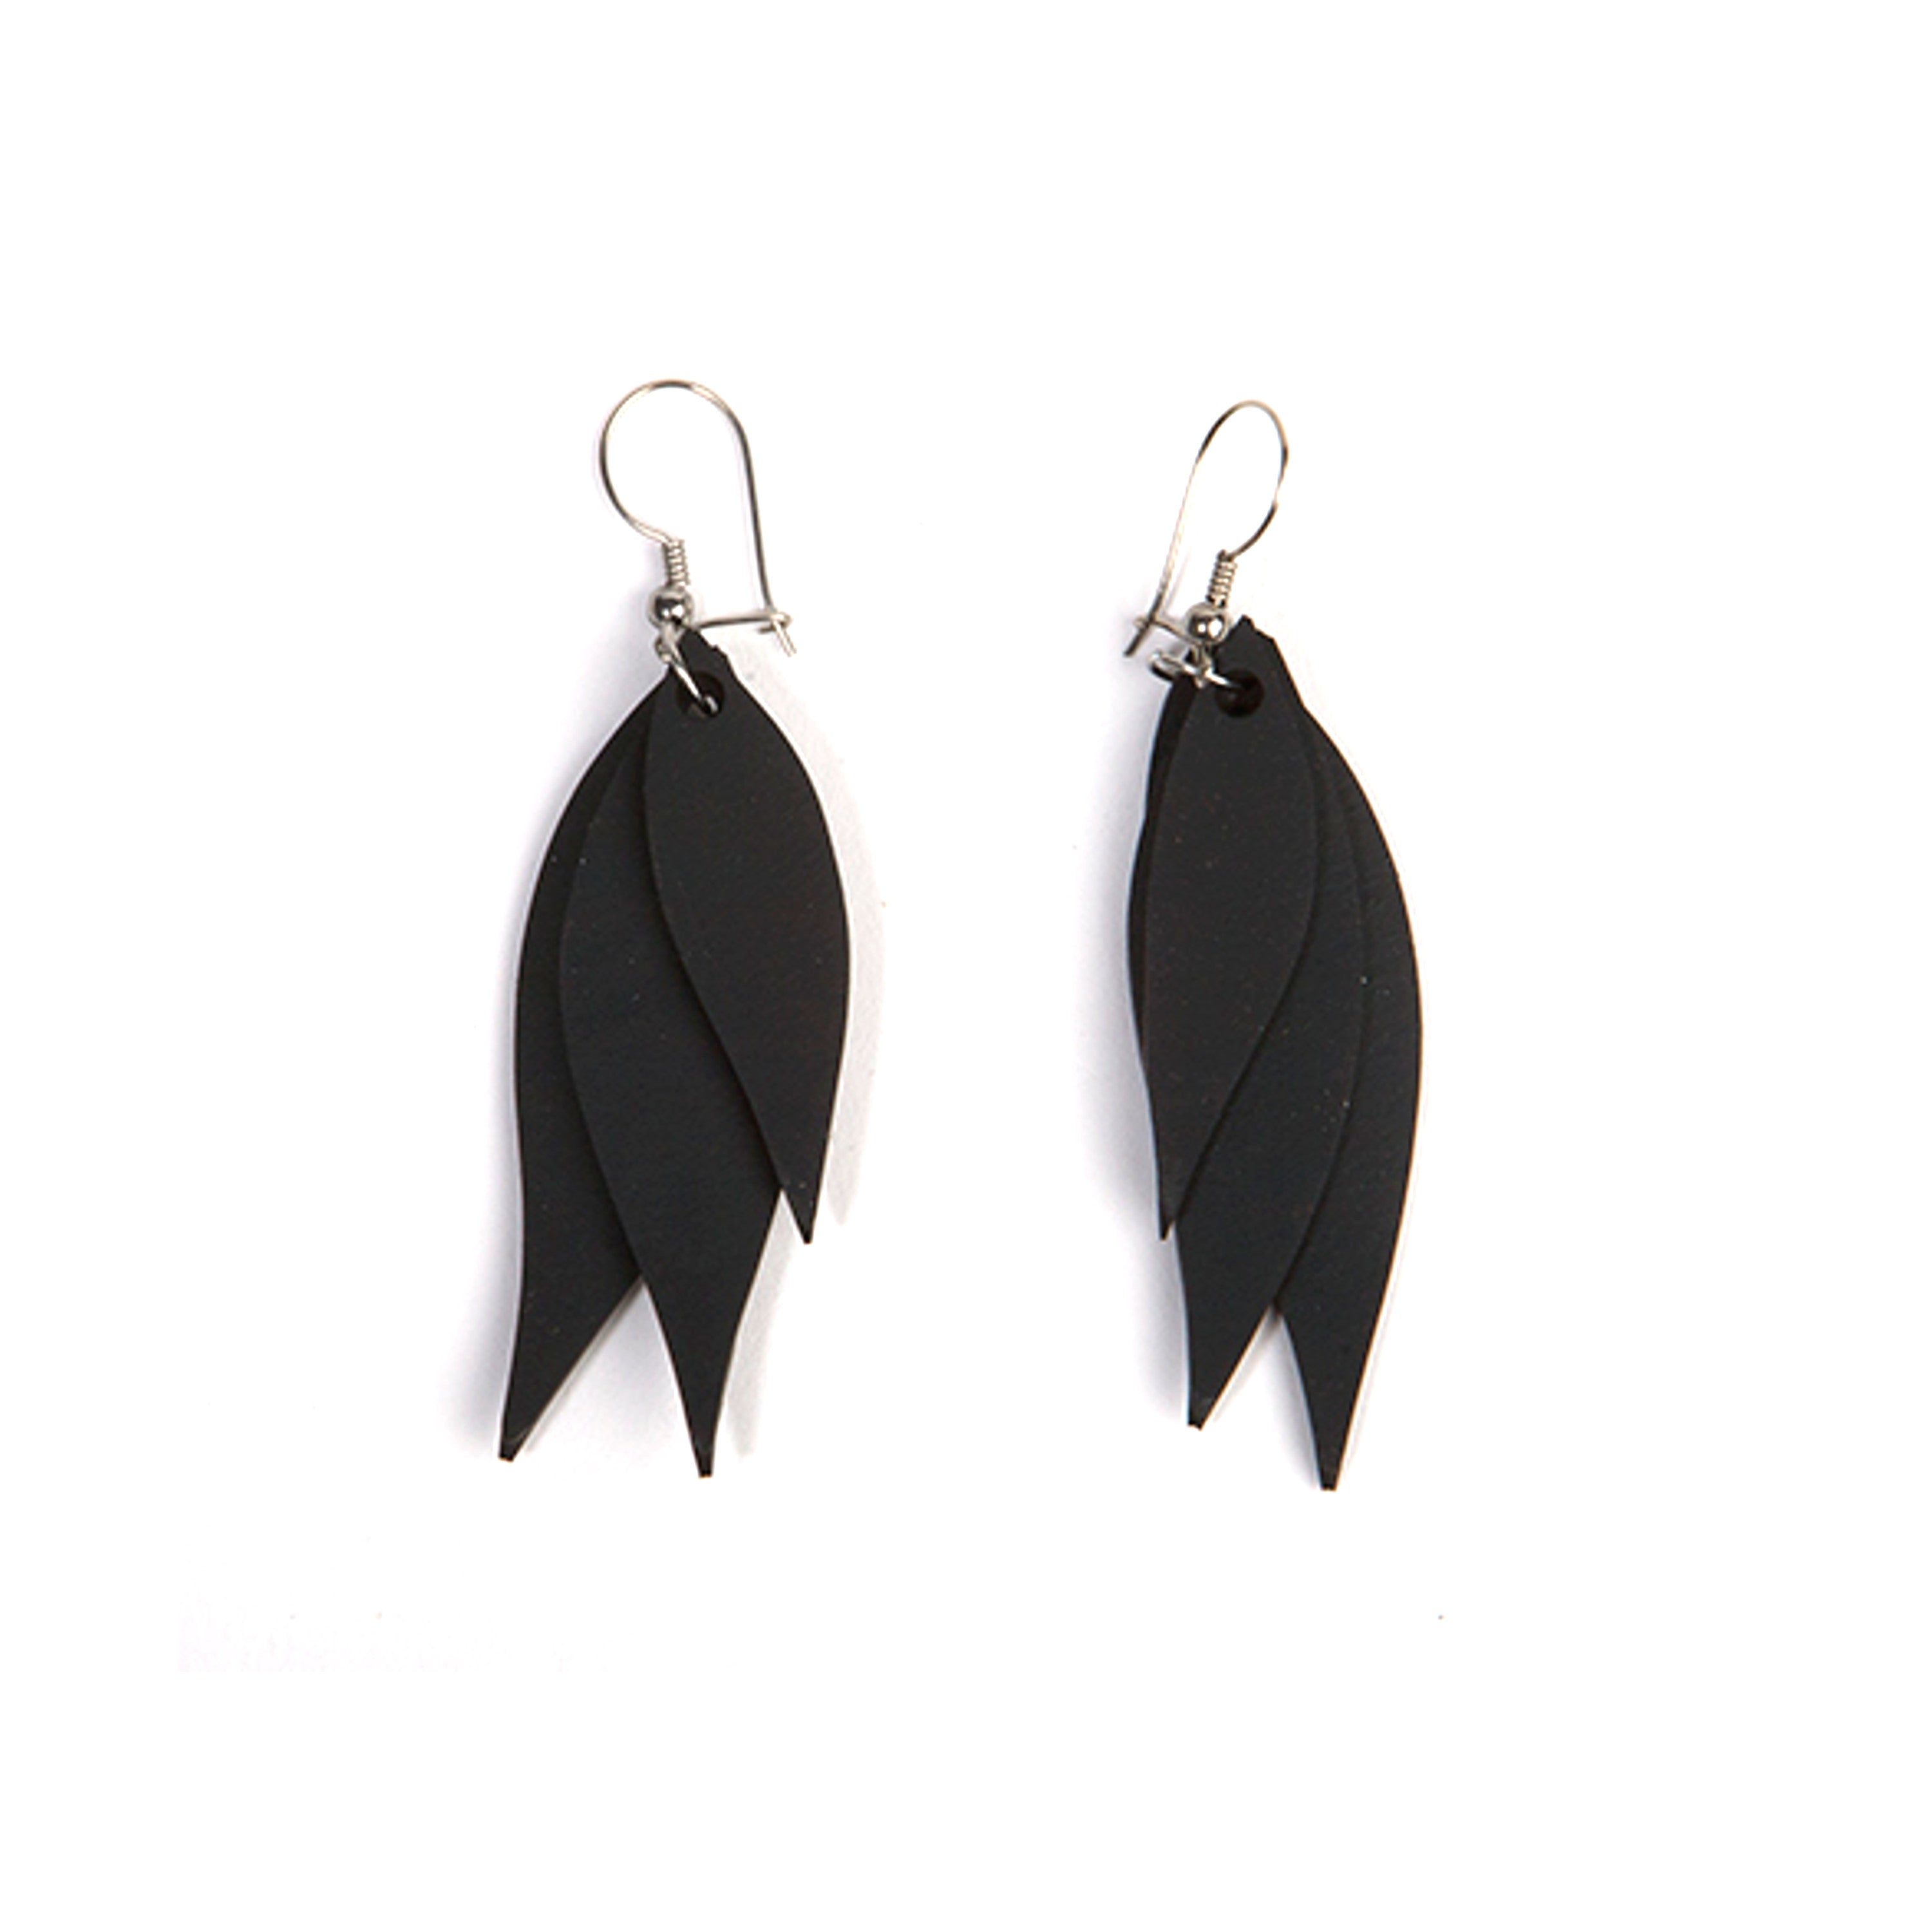 Flake Recycled Rubber Earrings